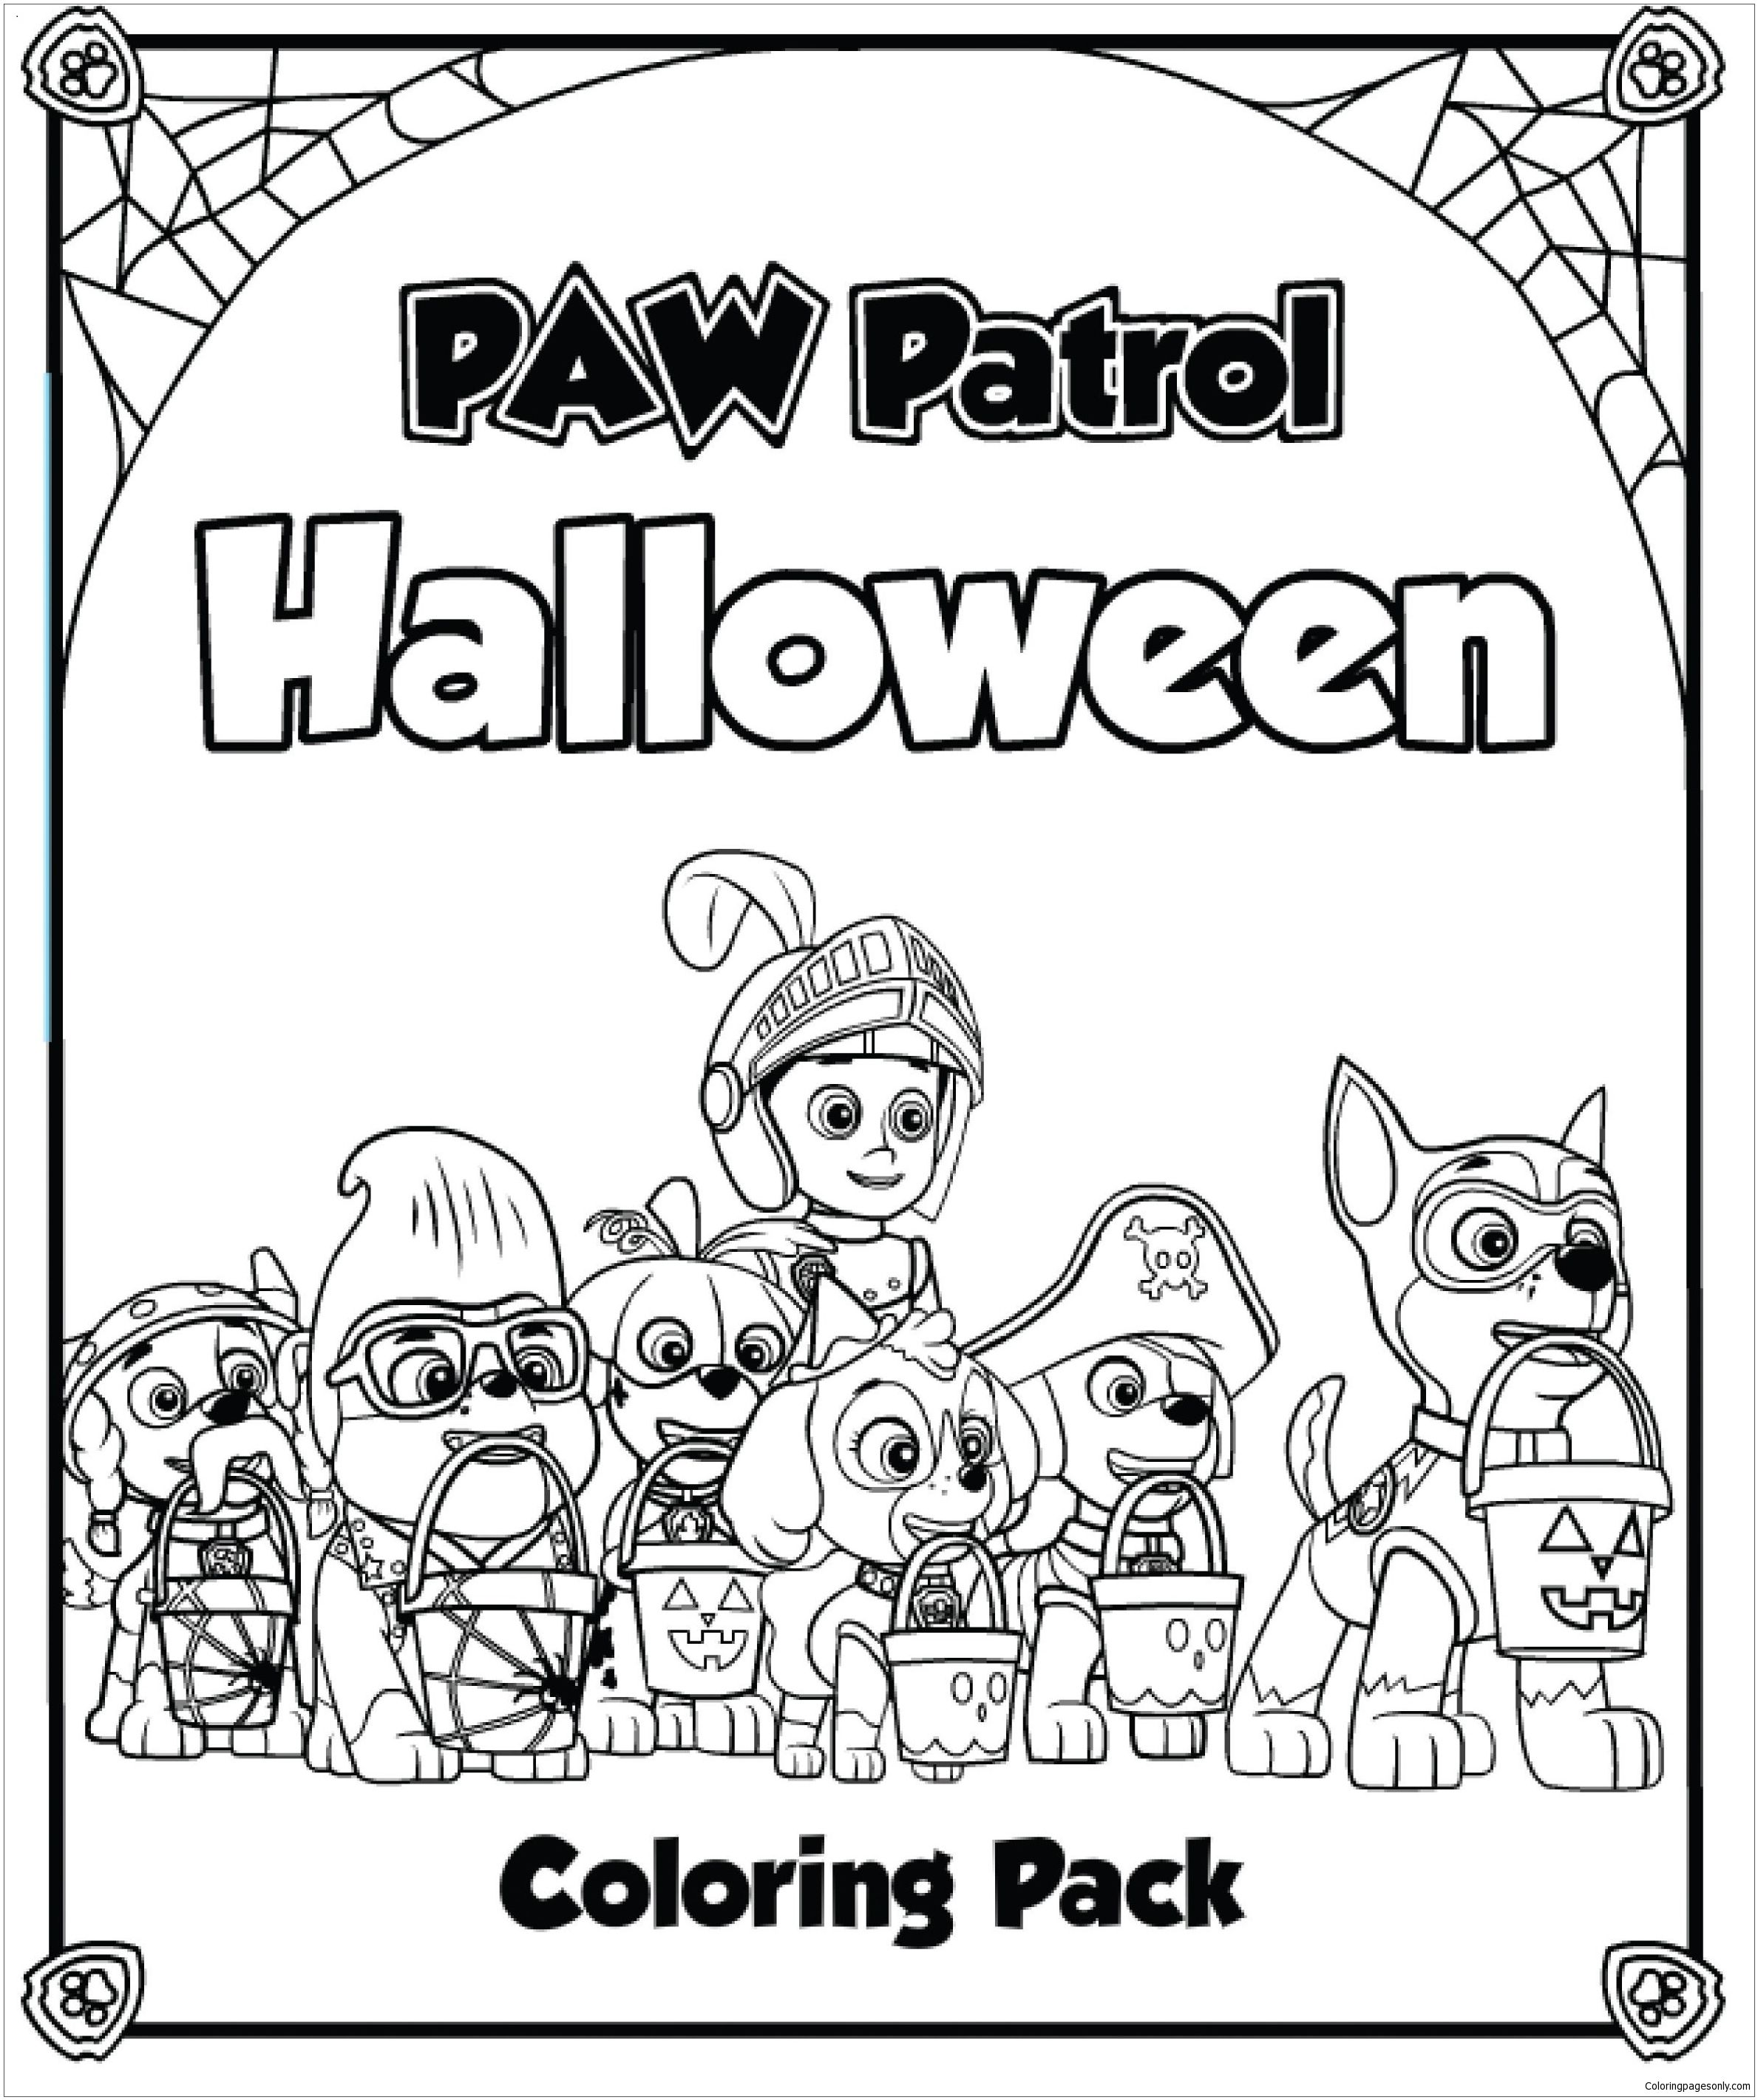 paw patrol halloween coloring pages Paw Patrol Halloween 2 Coloring Page | Paw Patrol Coloring Pages  paw patrol halloween coloring pages